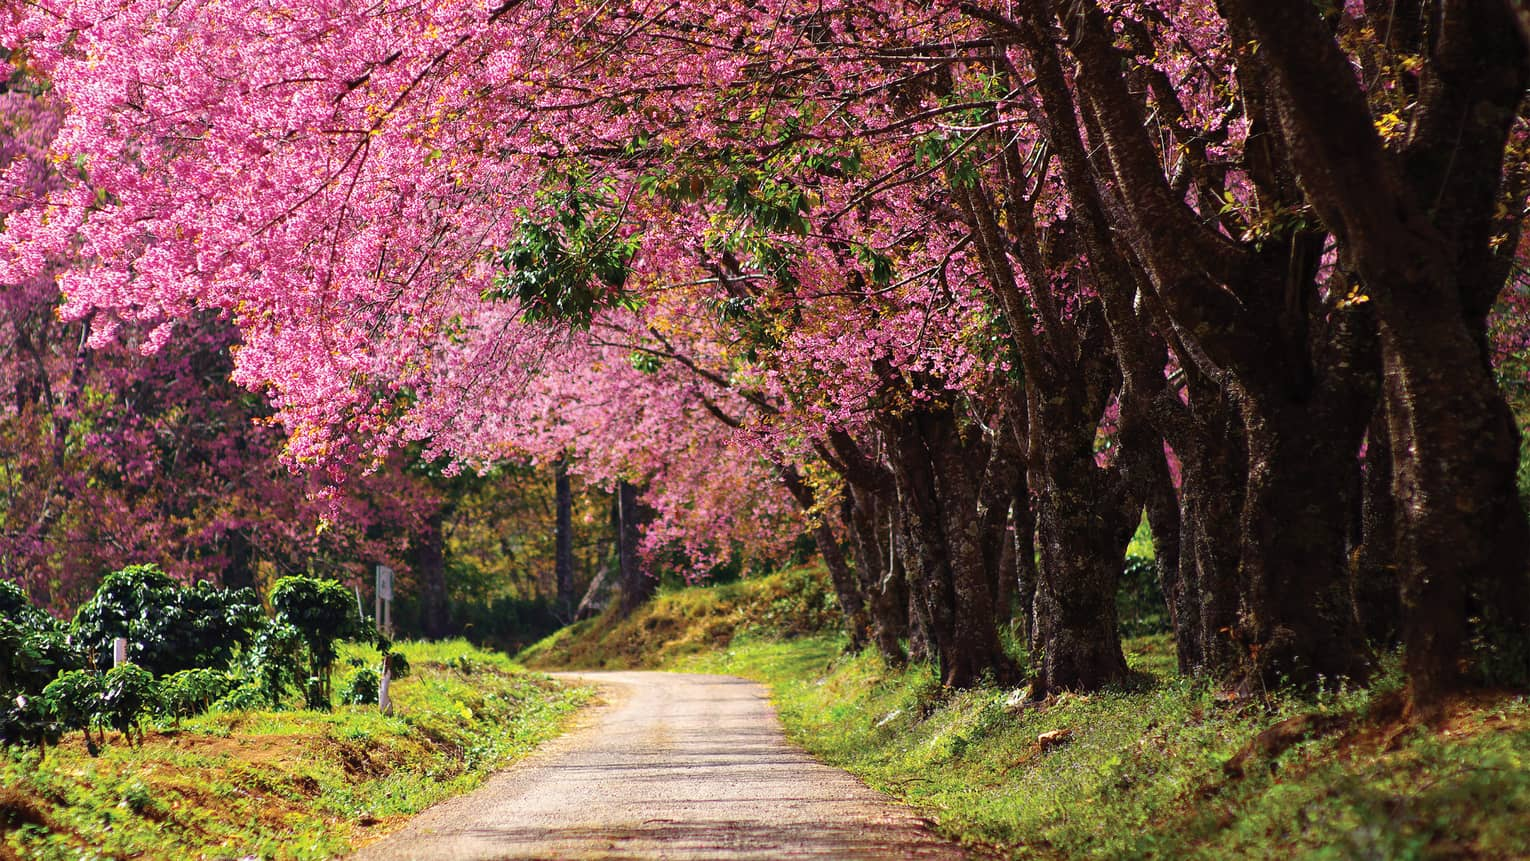 Nature trail under row of large trees with canopy of pink blossoms